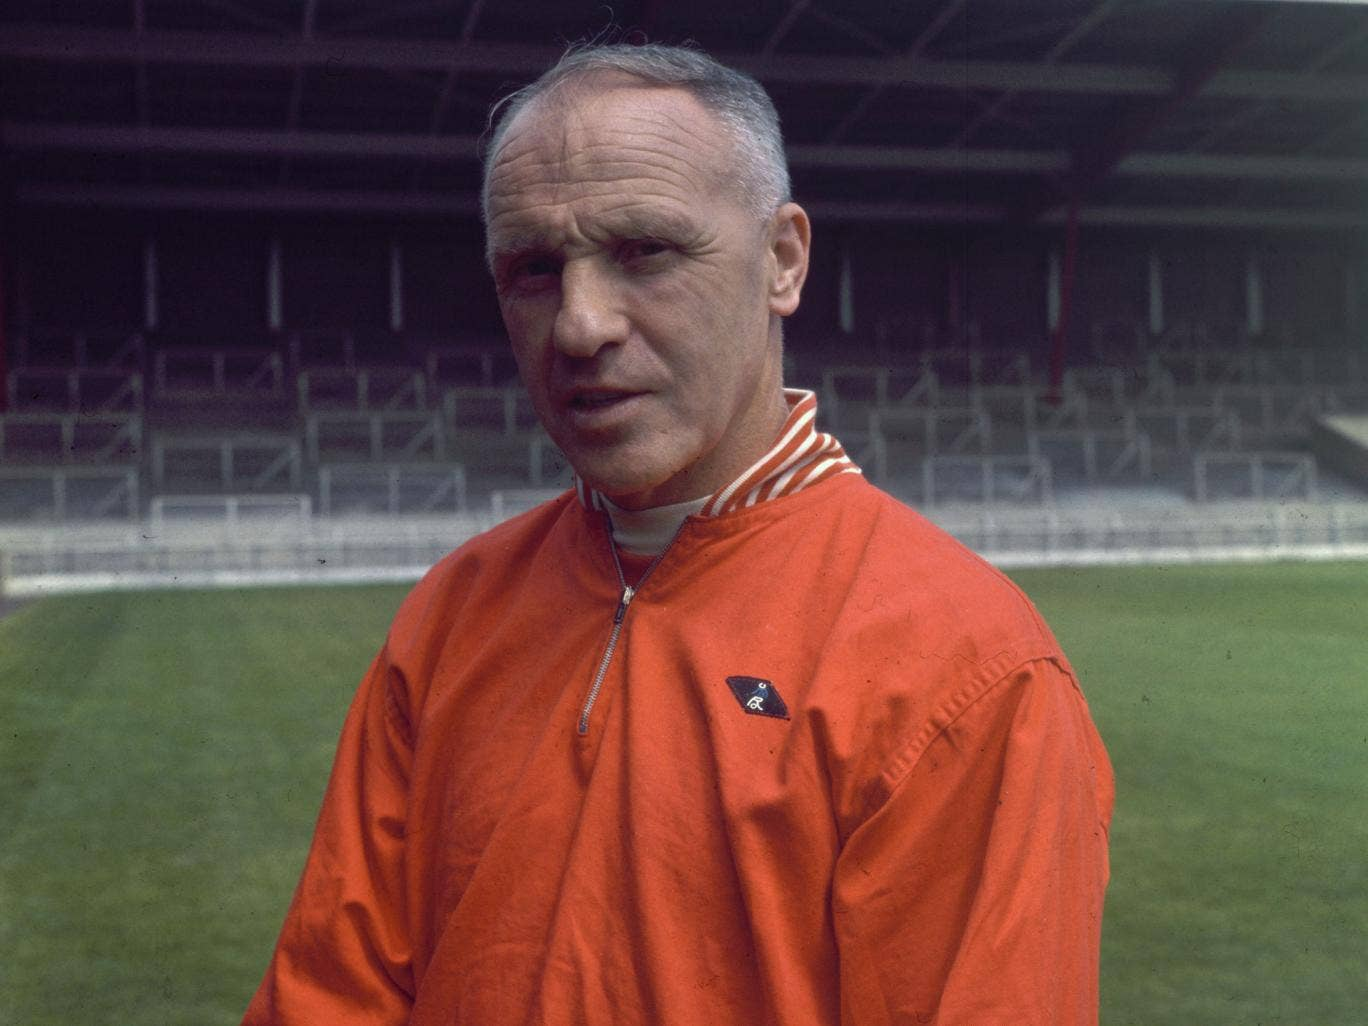 'Some people believe football is a matter of life and death, I am very disappointed with that attitude. I can assure you it is much, much more important than that' – the words of Bill Shankly, seen above at Anfield in 1969